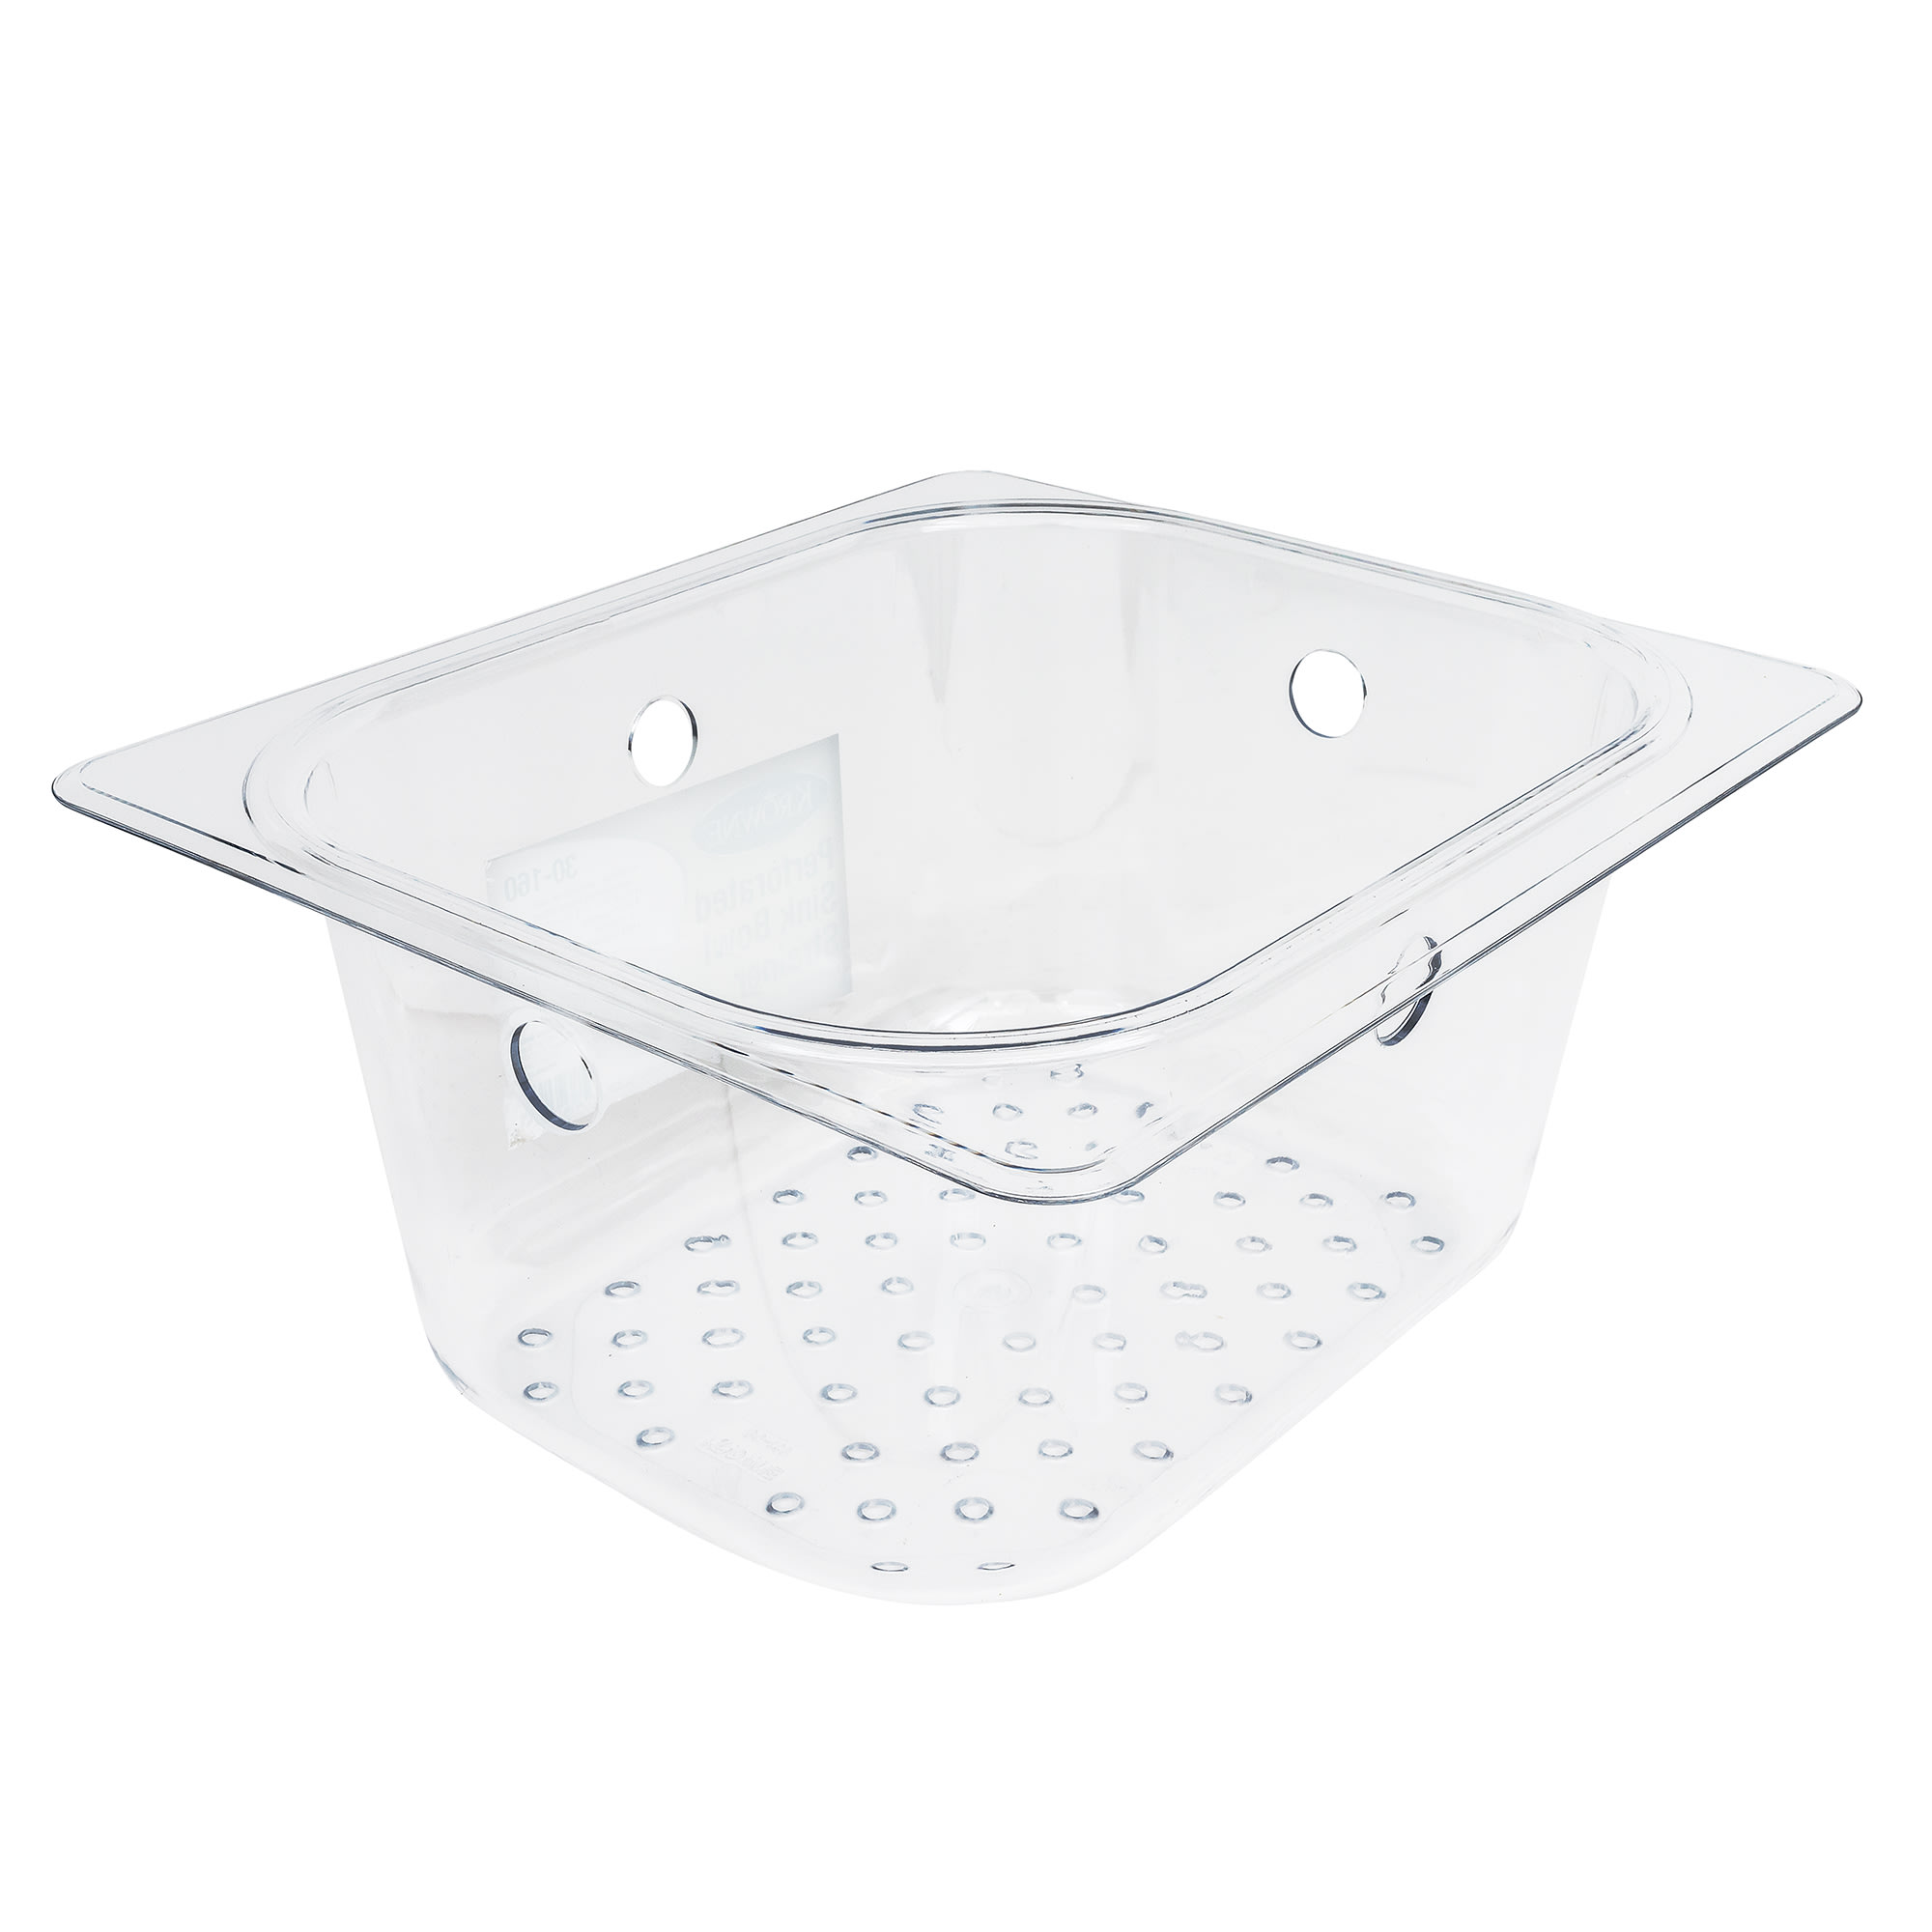 "Krowne 30-160 Perforated Basket for 10"" x 14"" & 10"" x 12"" Dump Sinks - 6"" Deep, Plastic"